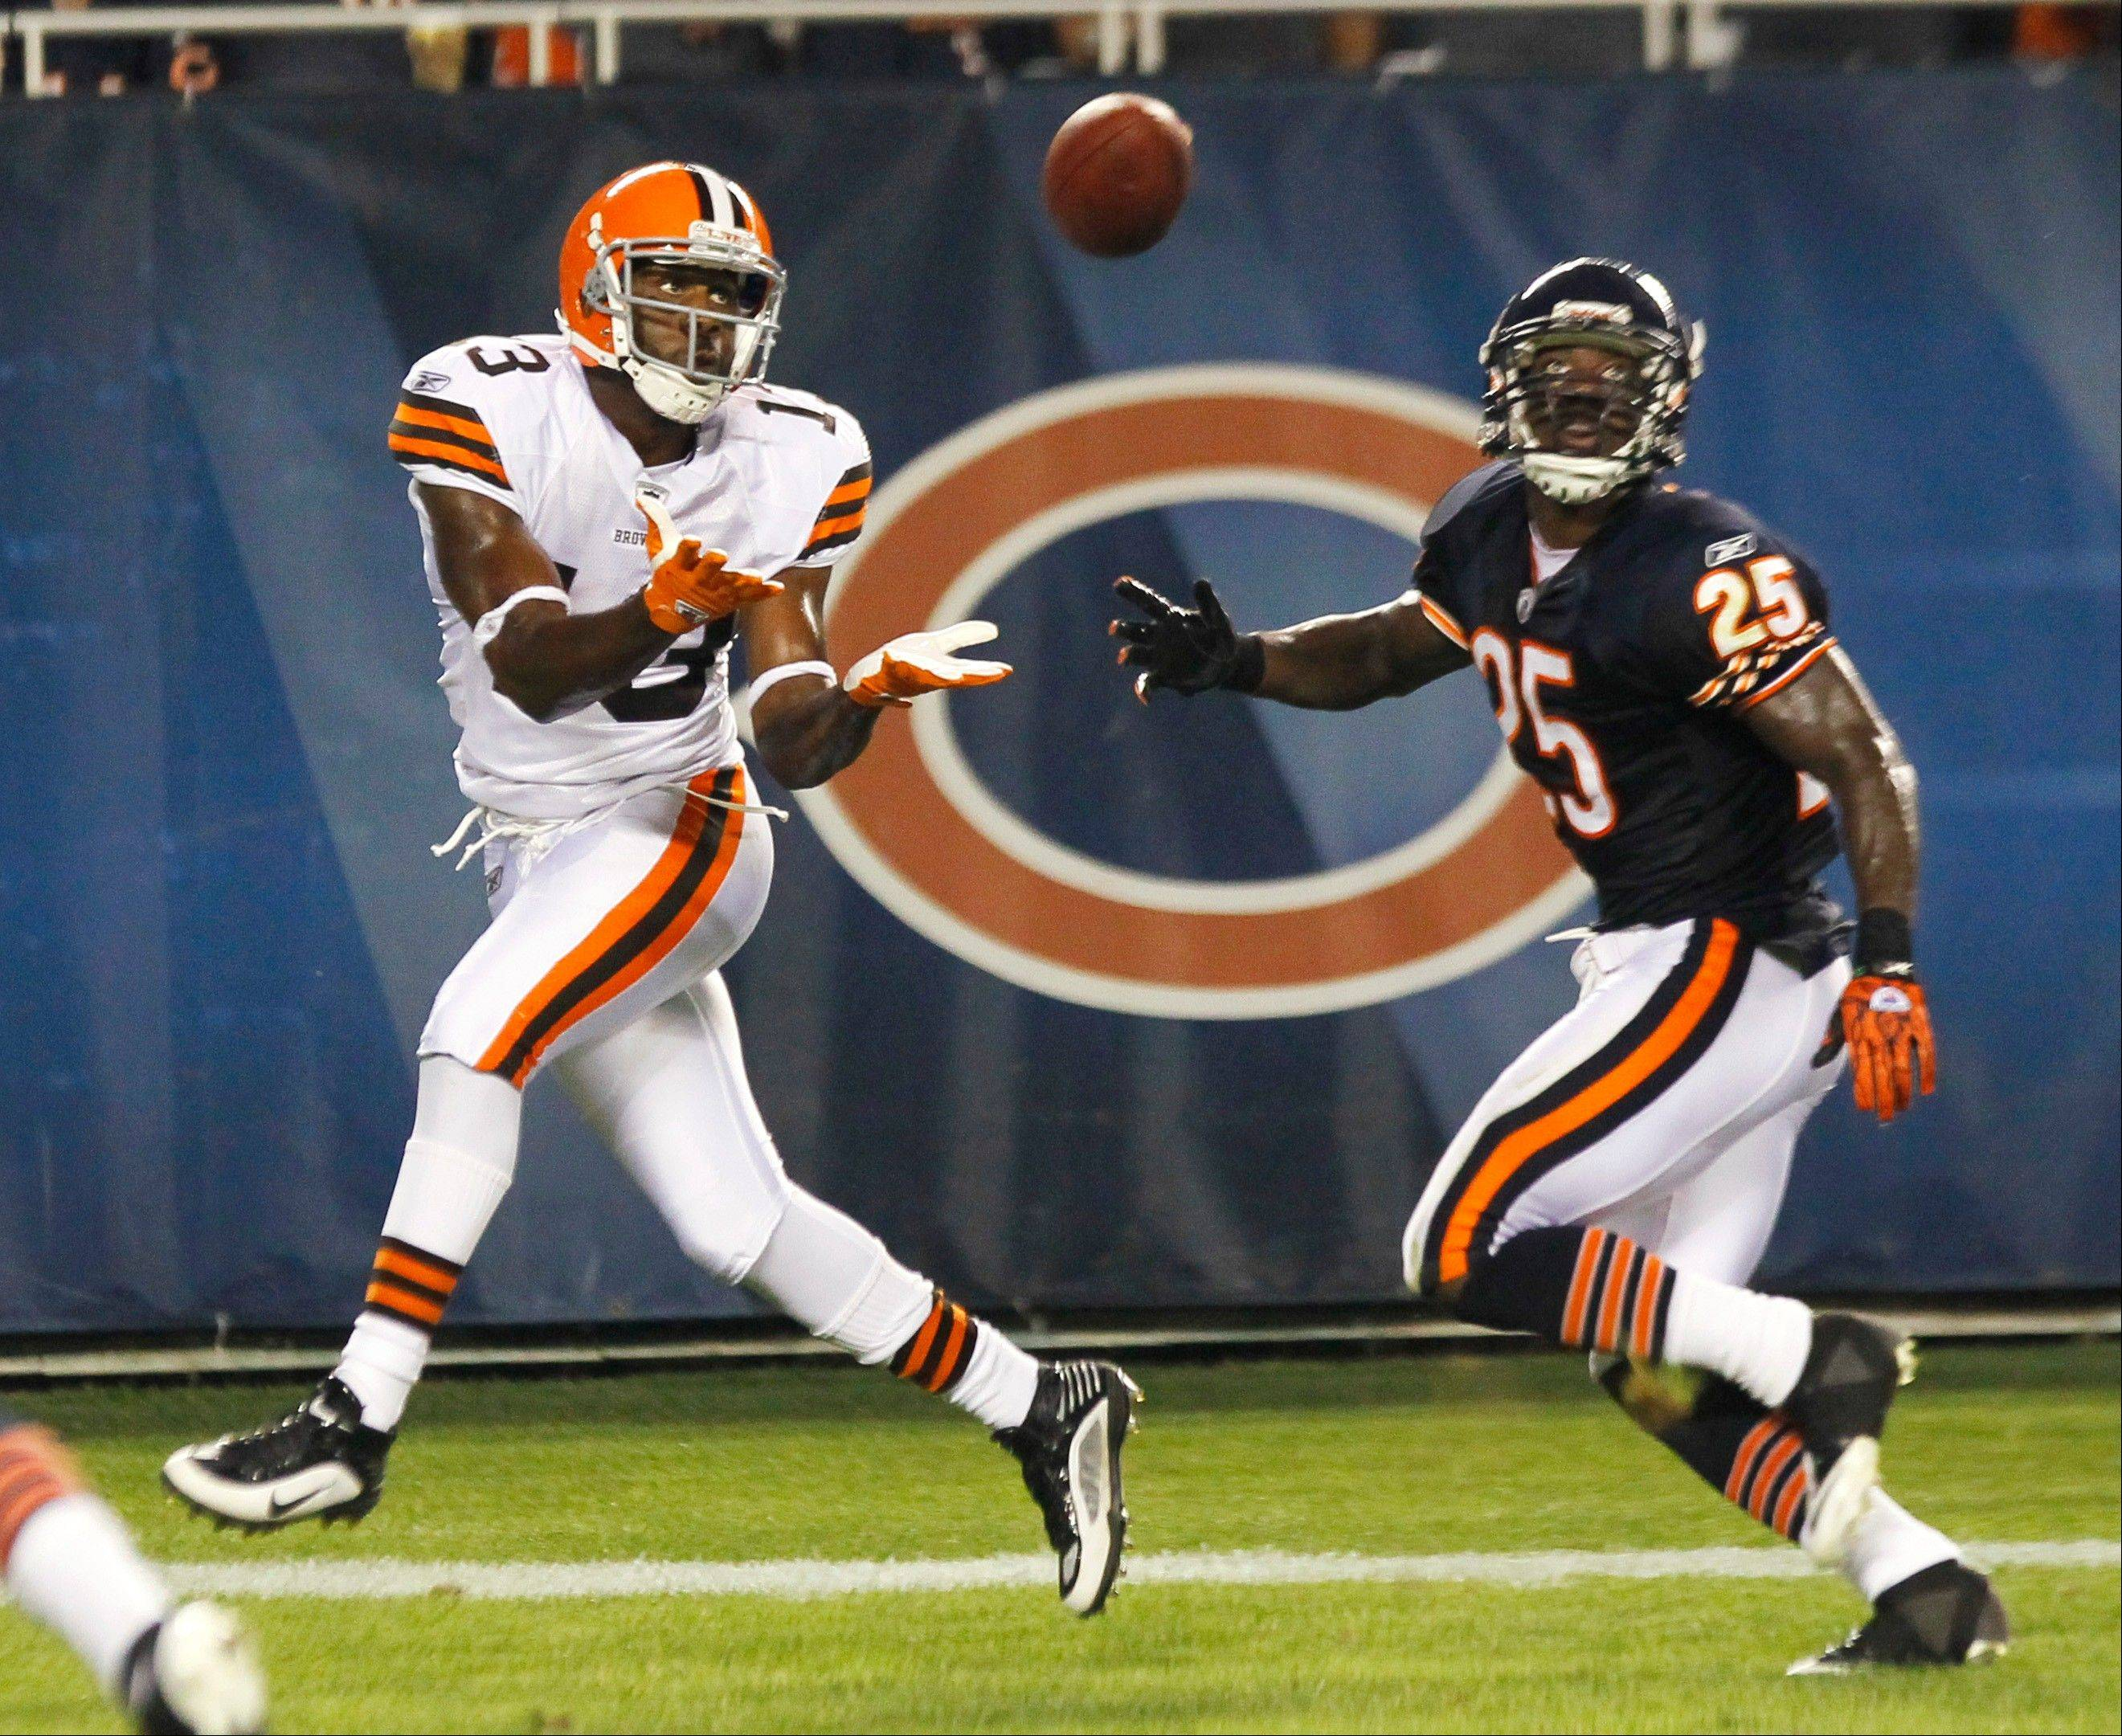 Cleveland Browns wide receiver Rod Windsor makes a touchdown catch against undrafted rookie cornerback Ryan Jones, one of 14 players waived by the Bears on Friday. The Bears must cut 13 more players by Saturday�s deadline.